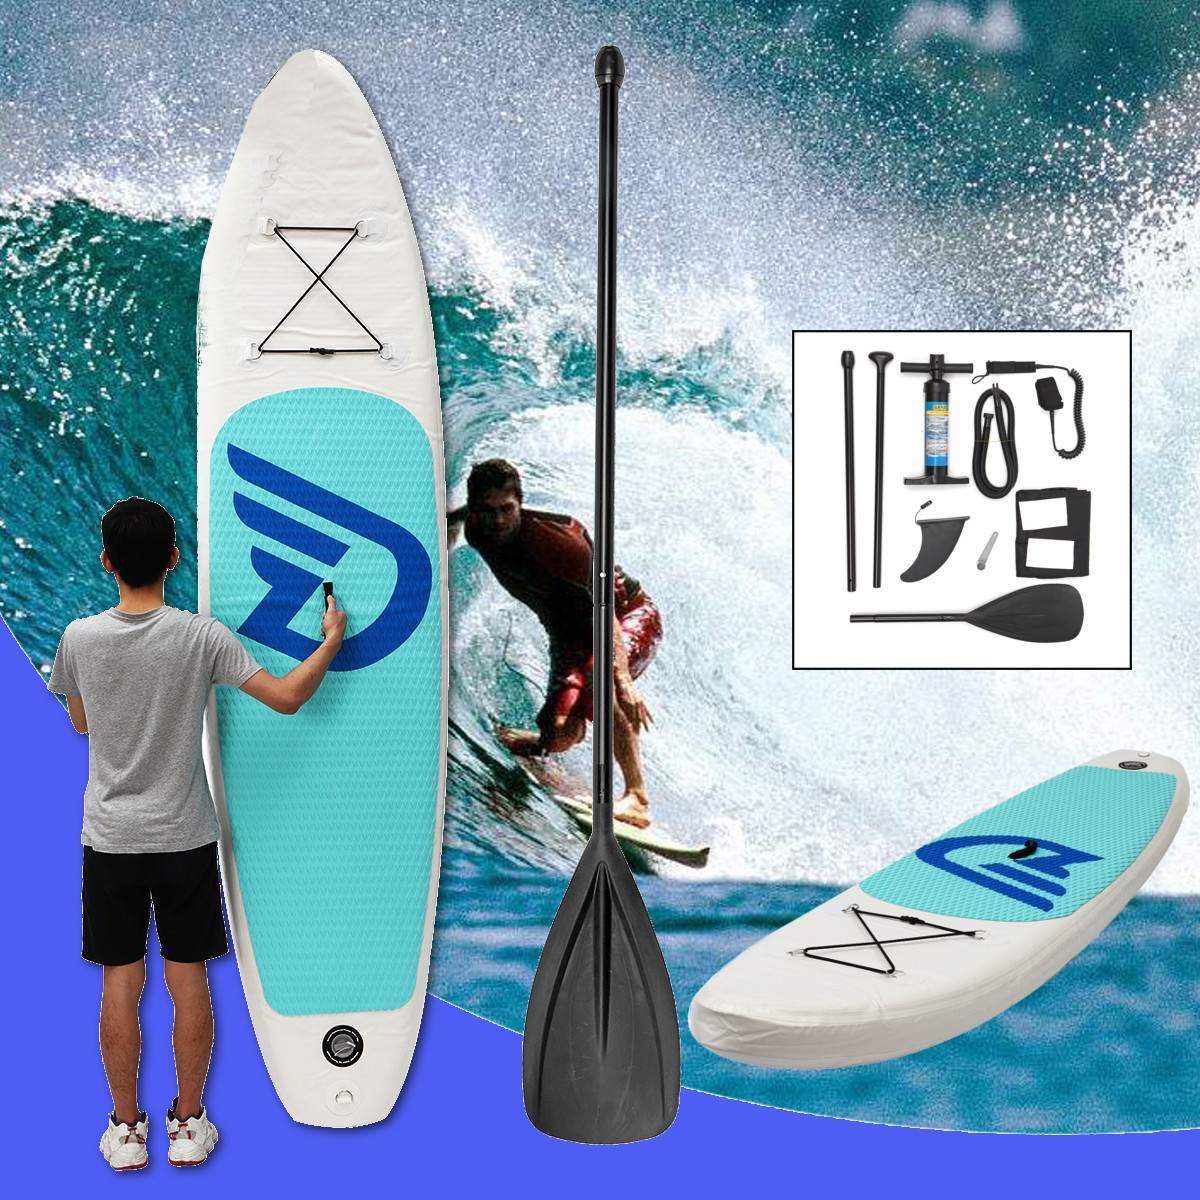 En plein air Gonflable planche de Surf 10ft Surf Paddle Board Stand Up Pompe À Eau Pied Laisse Plage Océan Body-Board Sports Nautiques